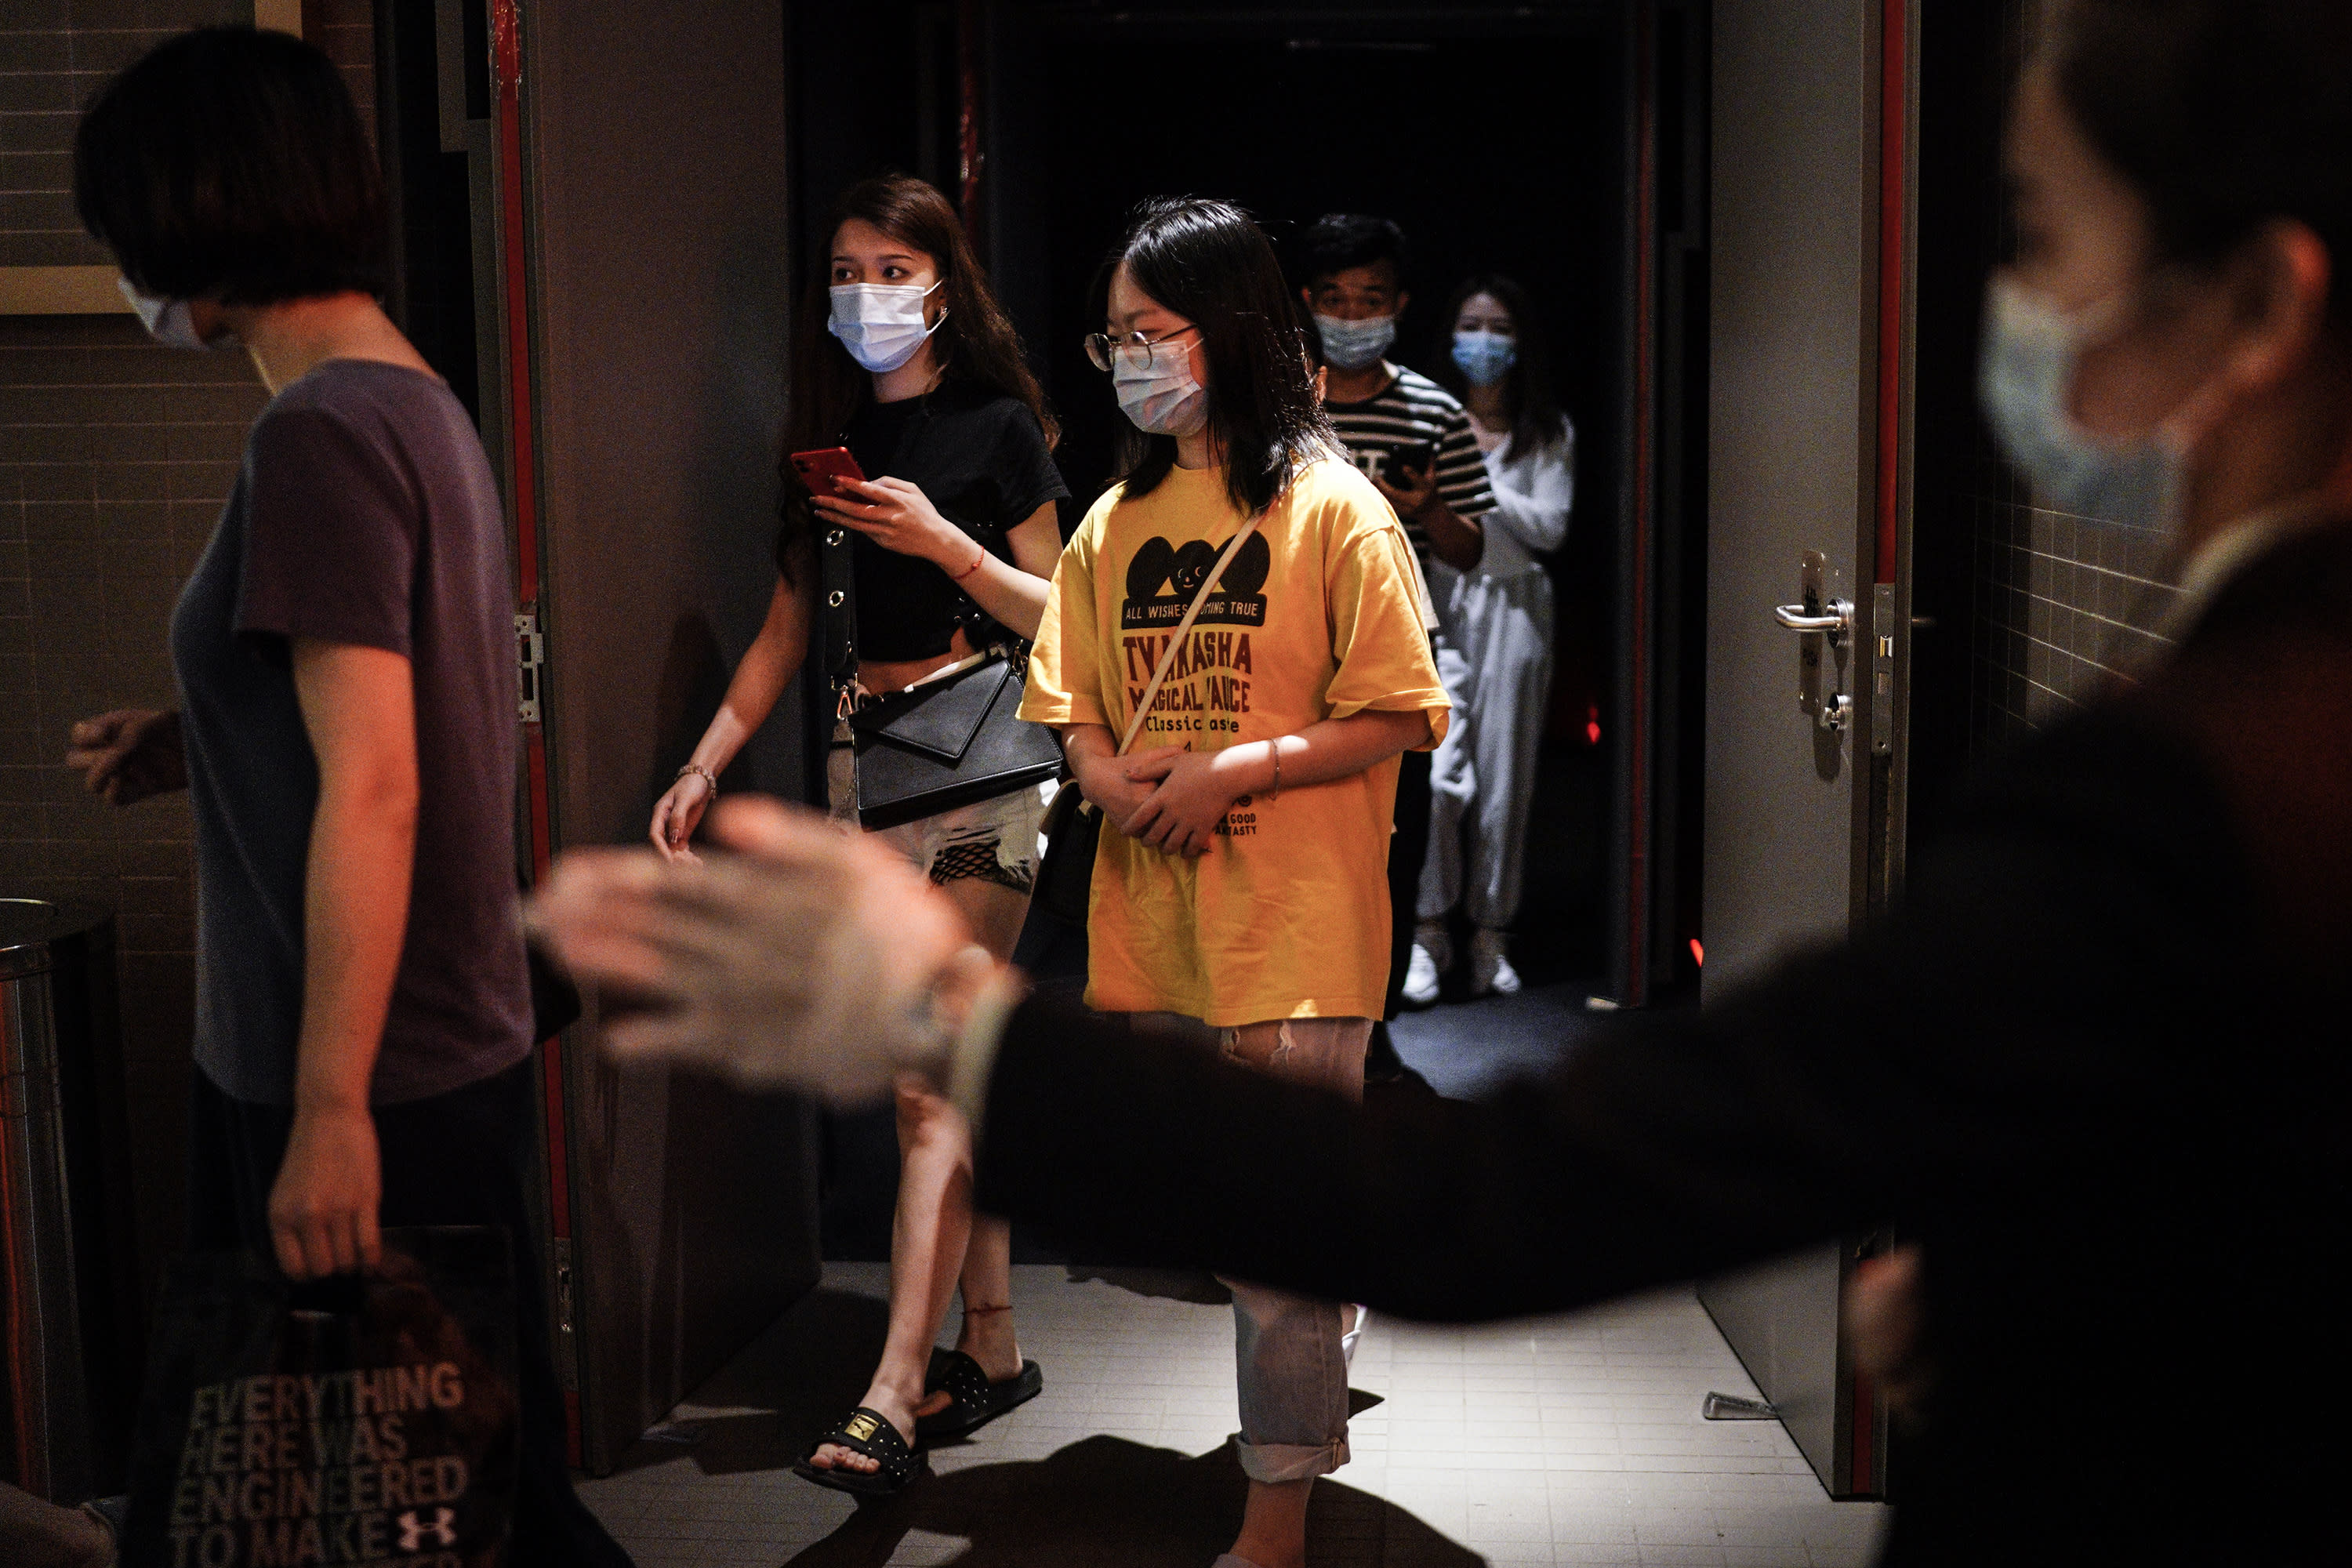 WUHAN, CHINA - JULY 20: (CHINA OUT)The employee wear the protective a mask while guides the audience through a passage to the exit in a cinema at Wuhan on July 20, 2020 in Wuhan ,Hubei Province,China.Taking various measures against COVID-19, cinemas in the city reopened in an orderly manner on Monday. The China Film Administration, in a circular last week, allowed cinemas in low-risk areas to resume operation with effective epidemic prevention measures in place. (Photo by Getty Images)